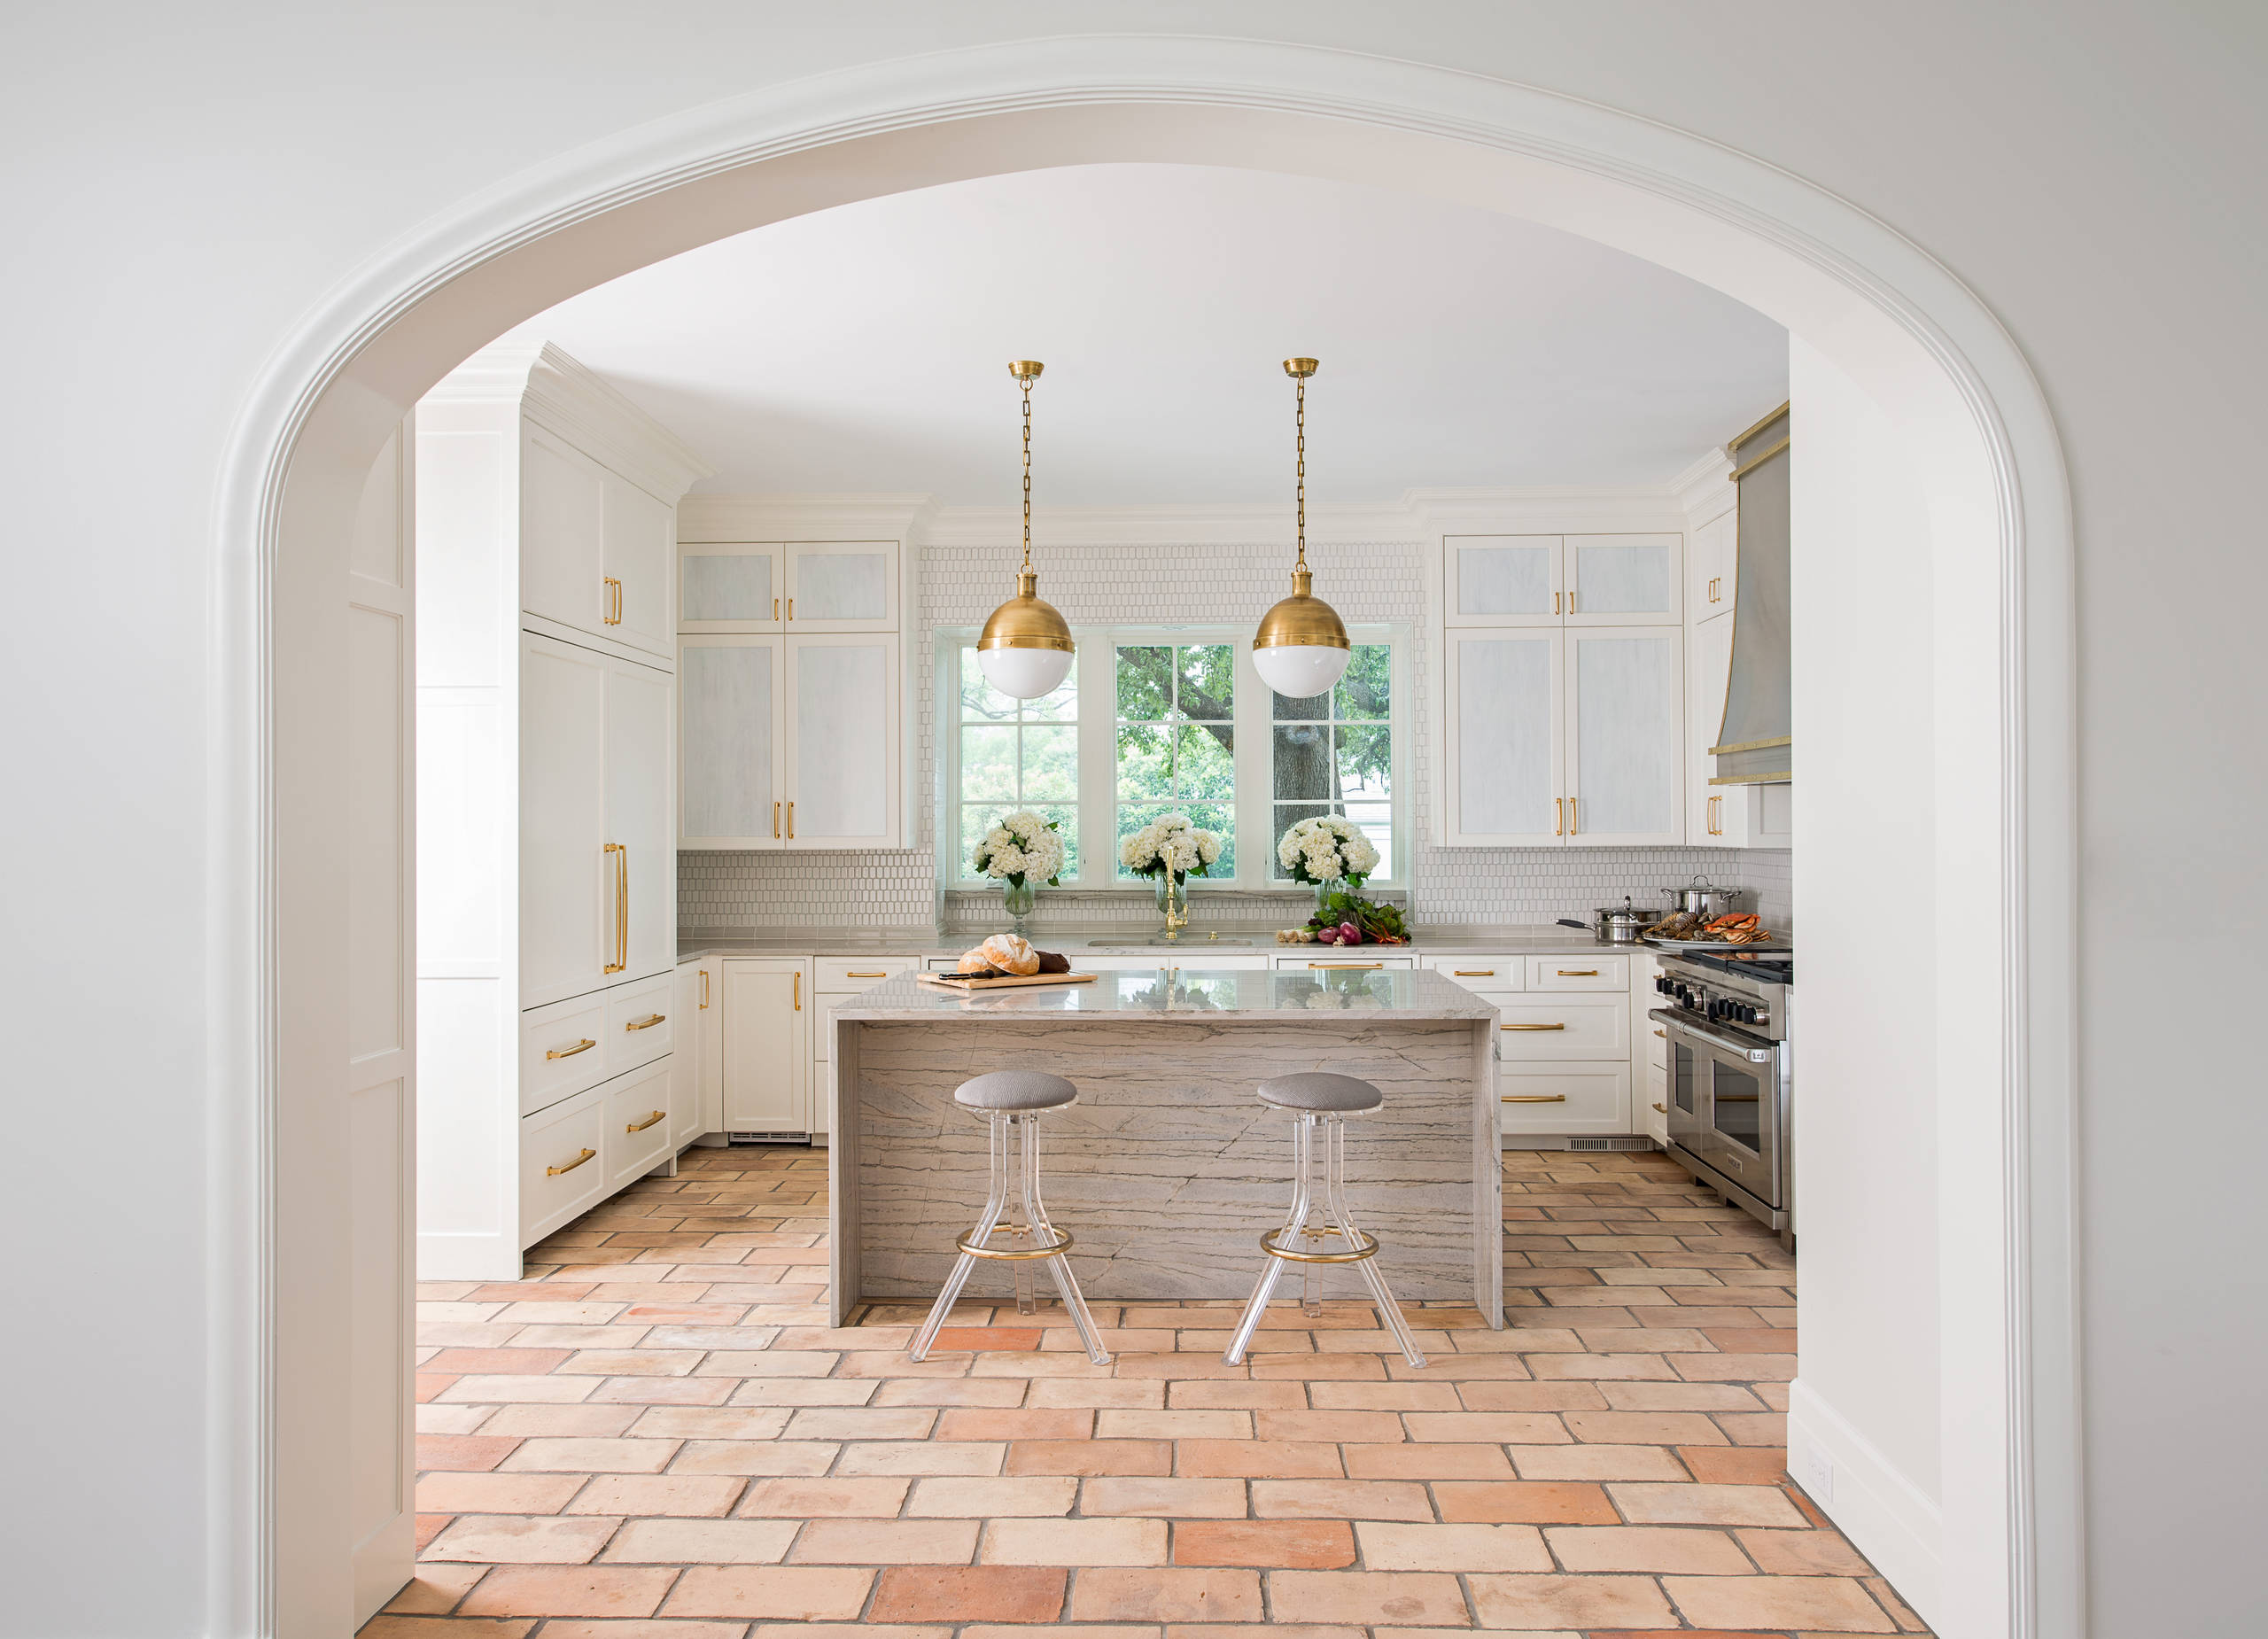 Must See Terra-Cotta Tile Kitchen Pictures & Ideas Before You